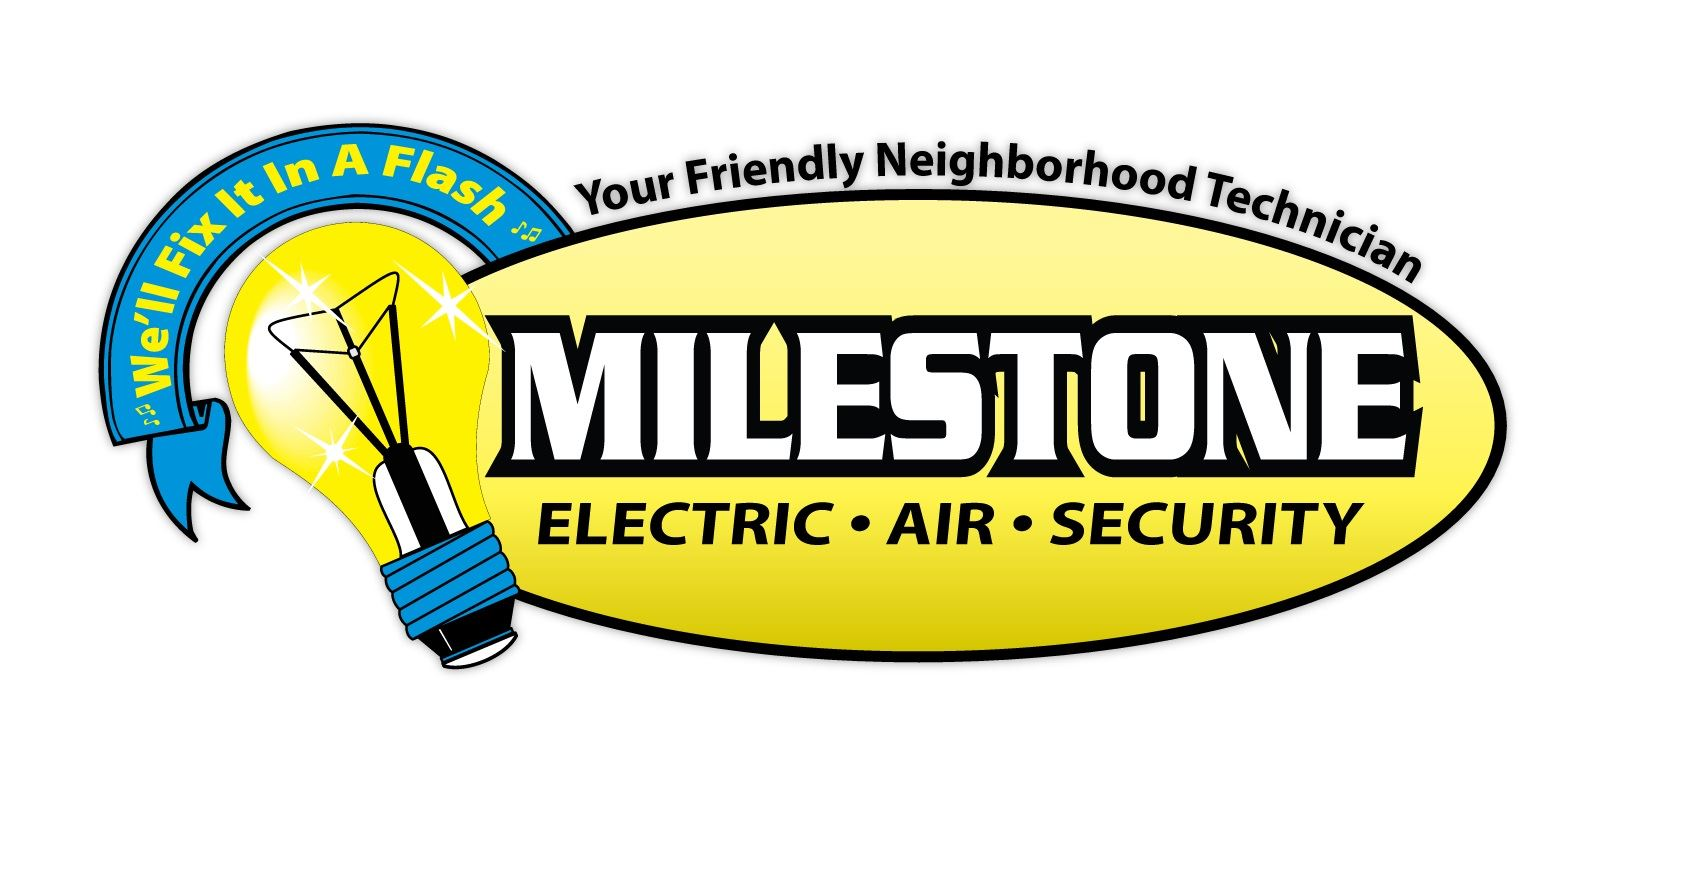 Milestone electric air security